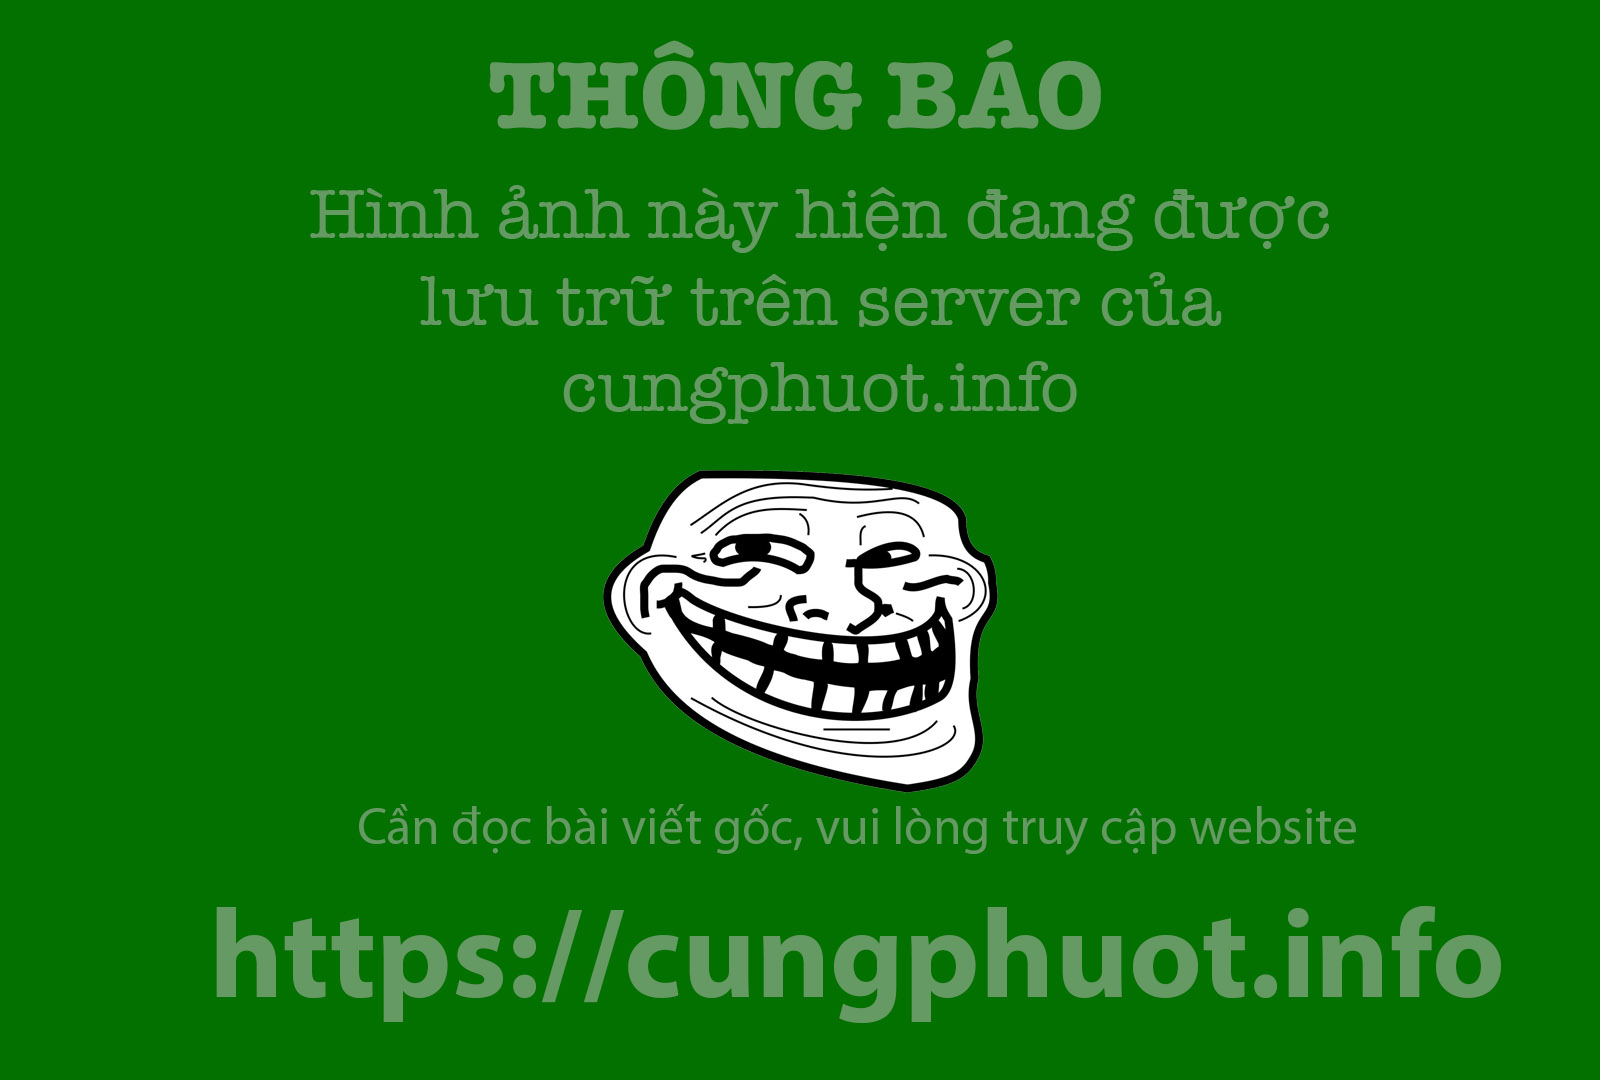 9 cung duong deo hung vi khien tin do du lich muon chinh phuc hinh anh 1